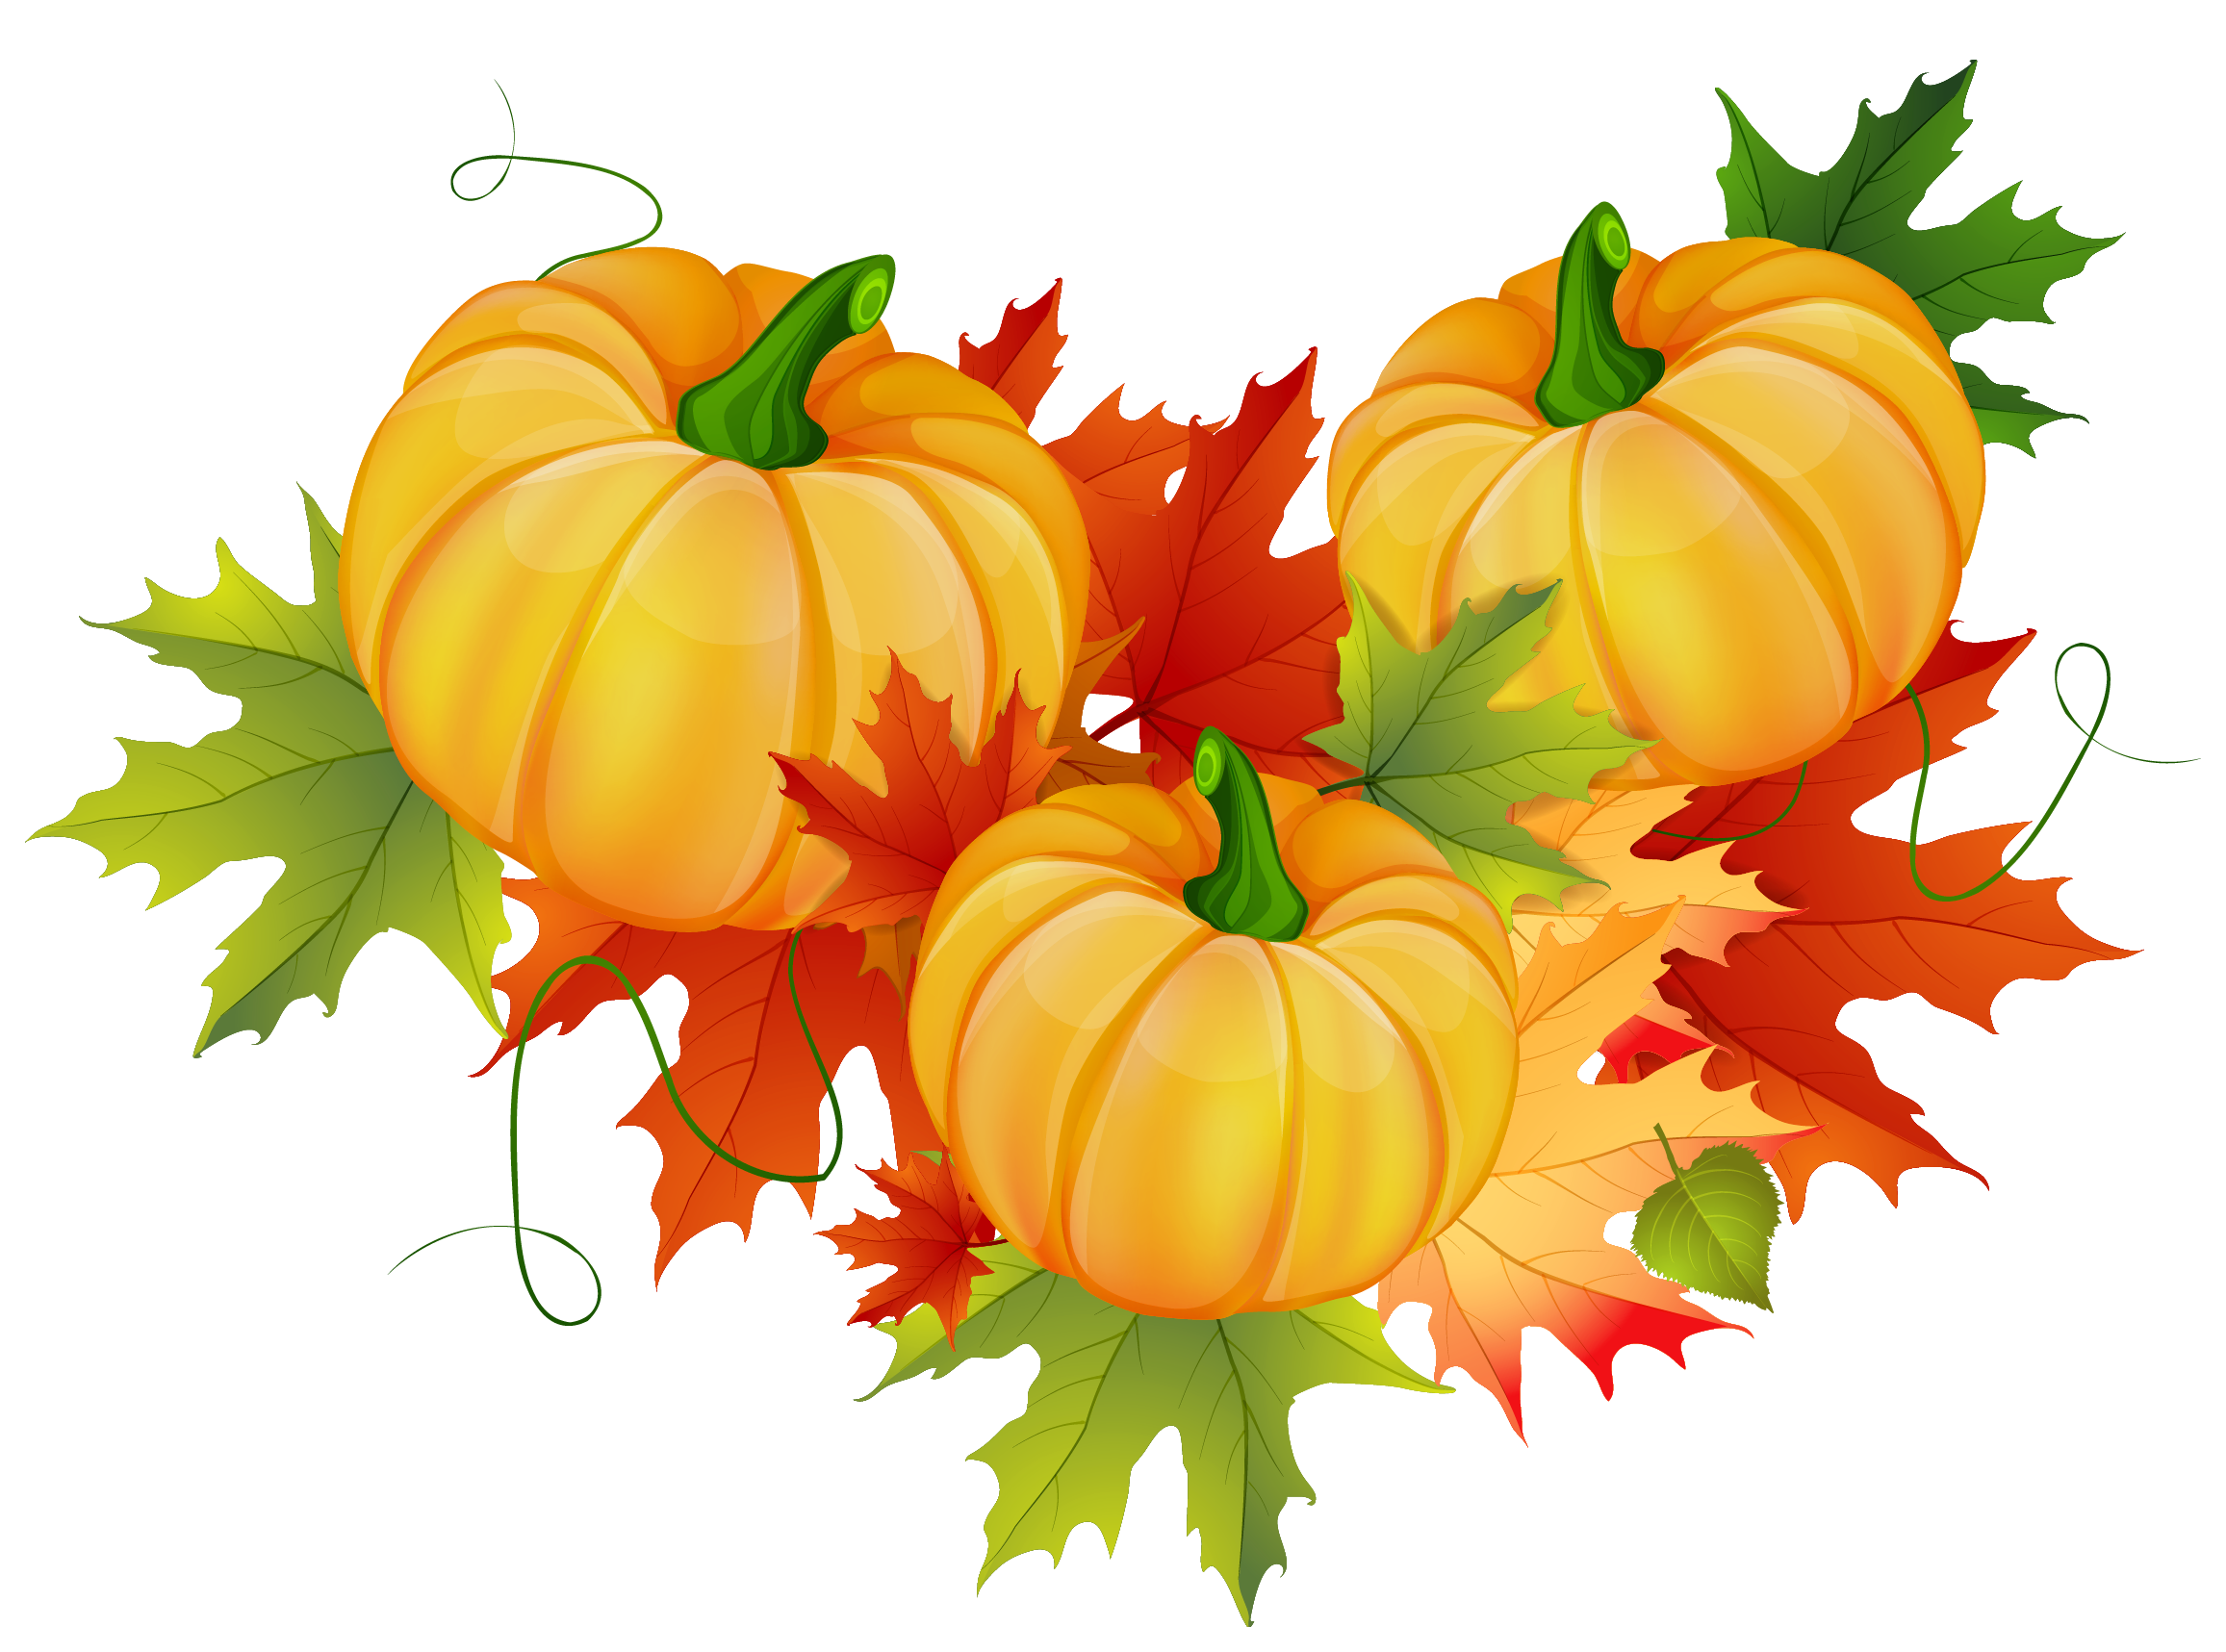 Pumpkin clipart pumpkin decorating. Thanksgiving decoration png pinterest